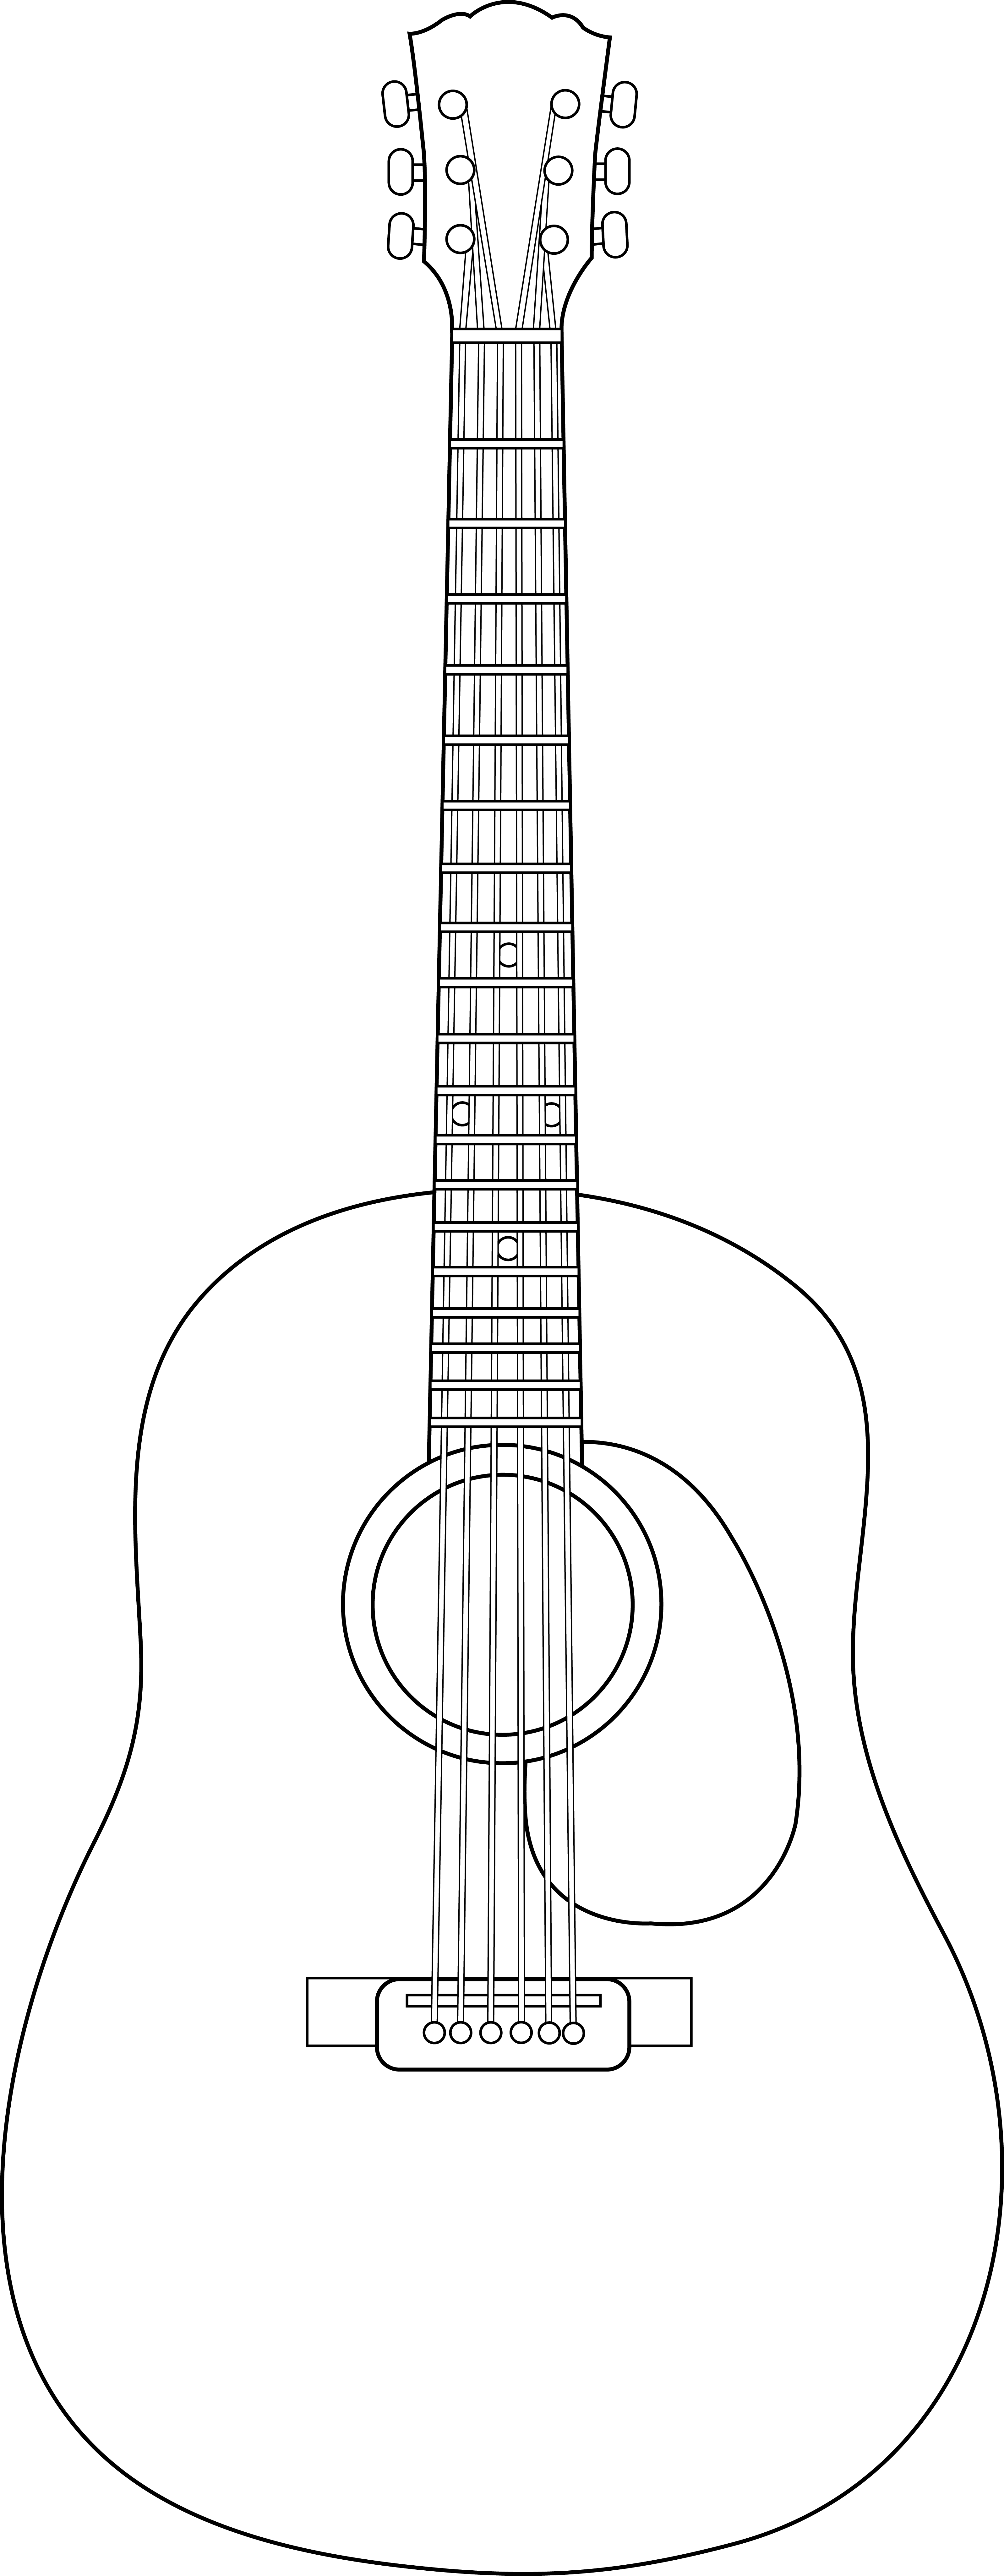 guitar strings clipart